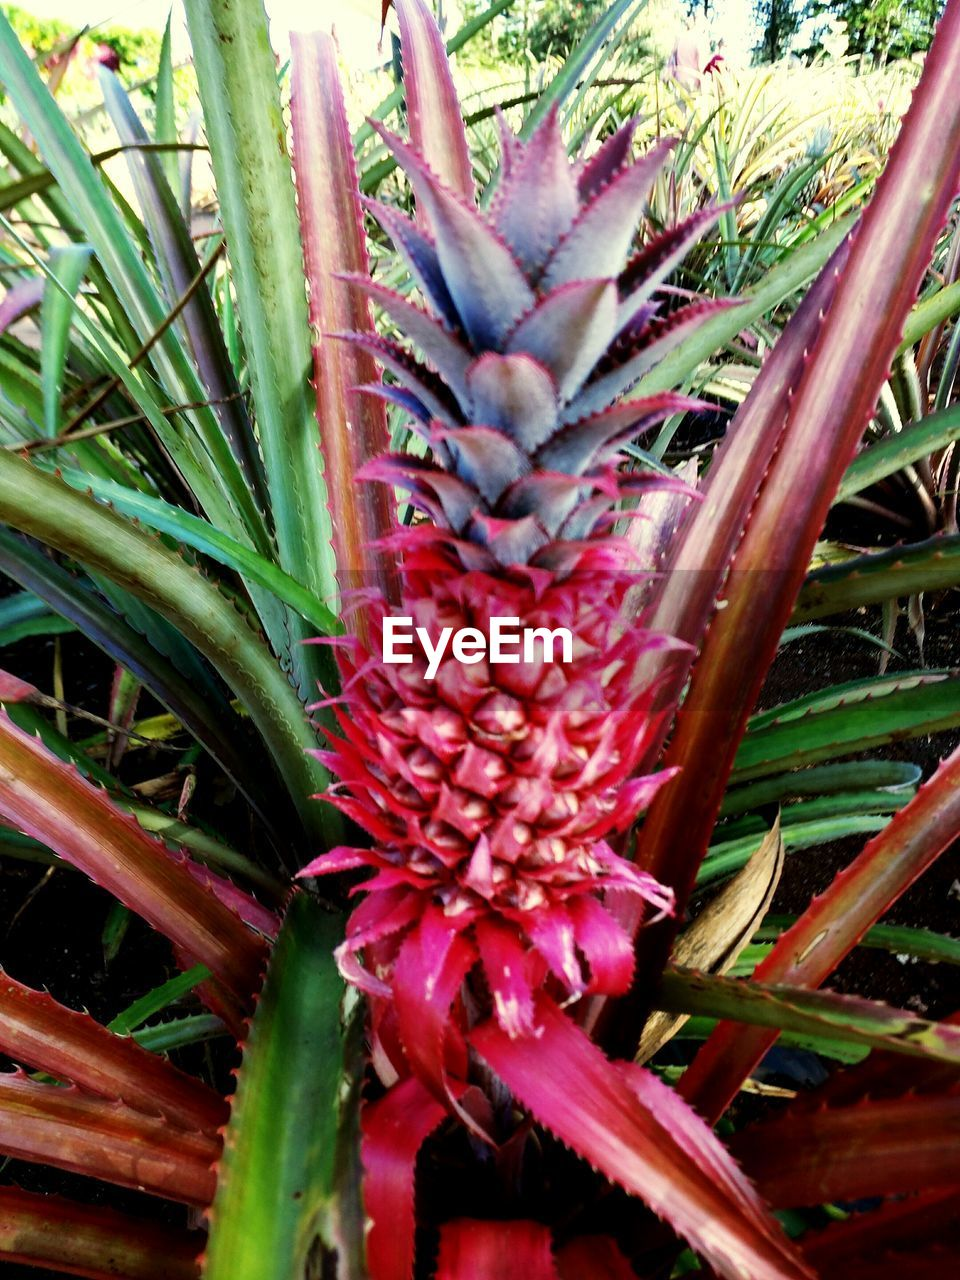 growth, nature, aloe vera plant, plant, green color, outdoors, beauty in nature, day, freshness, no people, flower, red, close-up